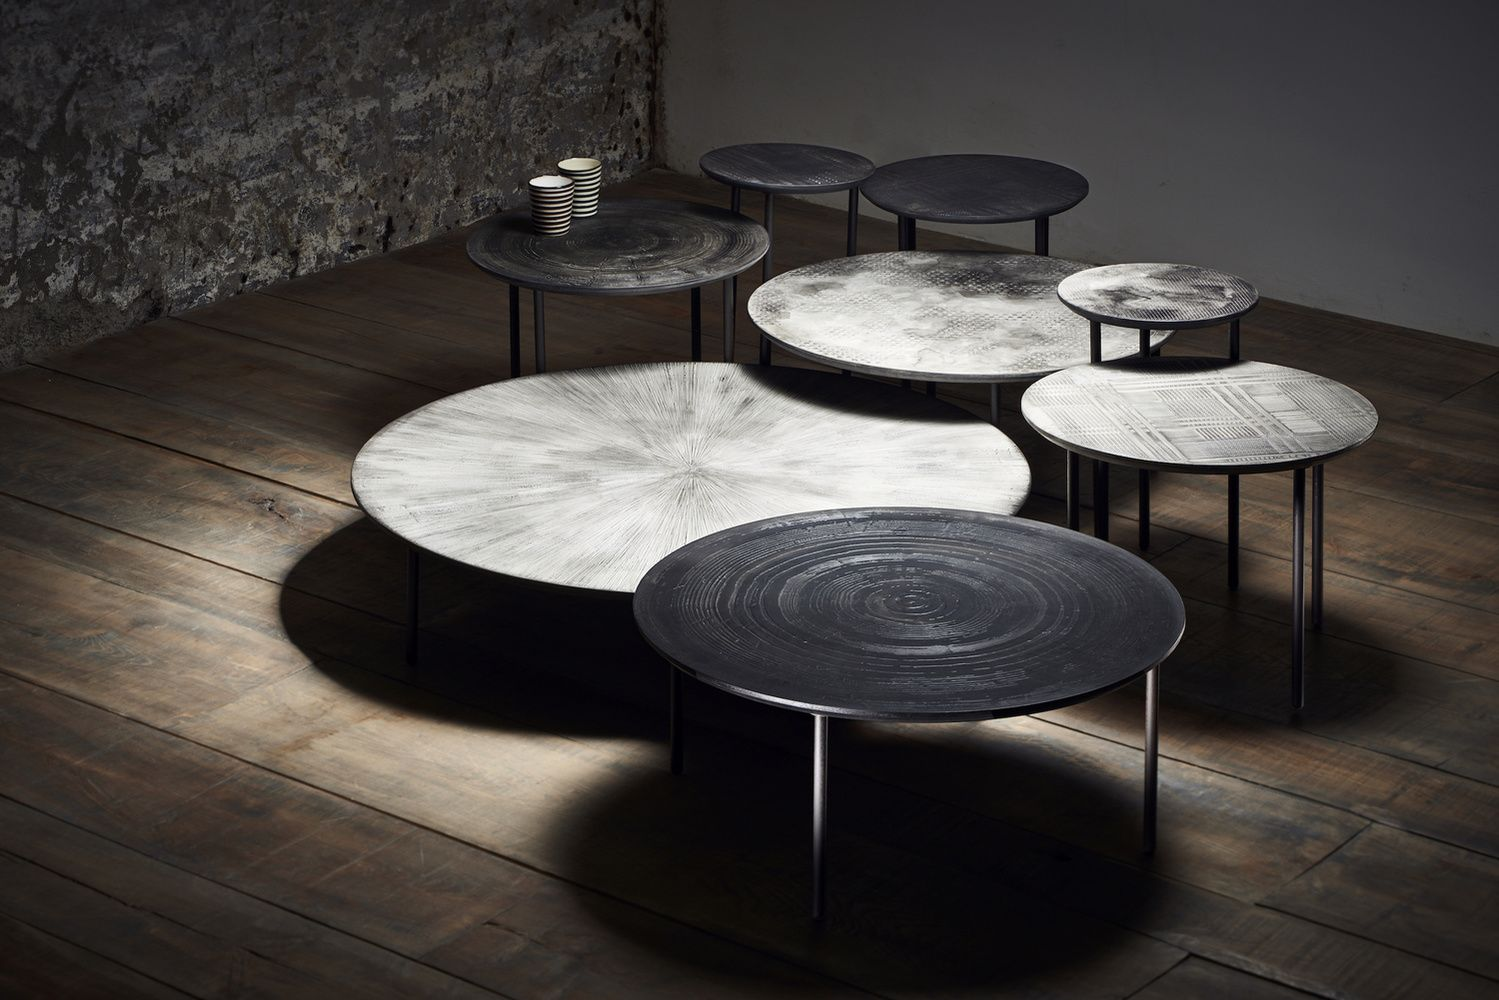 Multi Moon Mos Mom The Maison Objet Experience All Year Round Coffee Table Table Design Interior Furniture [ 1000 x 1499 Pixel ]